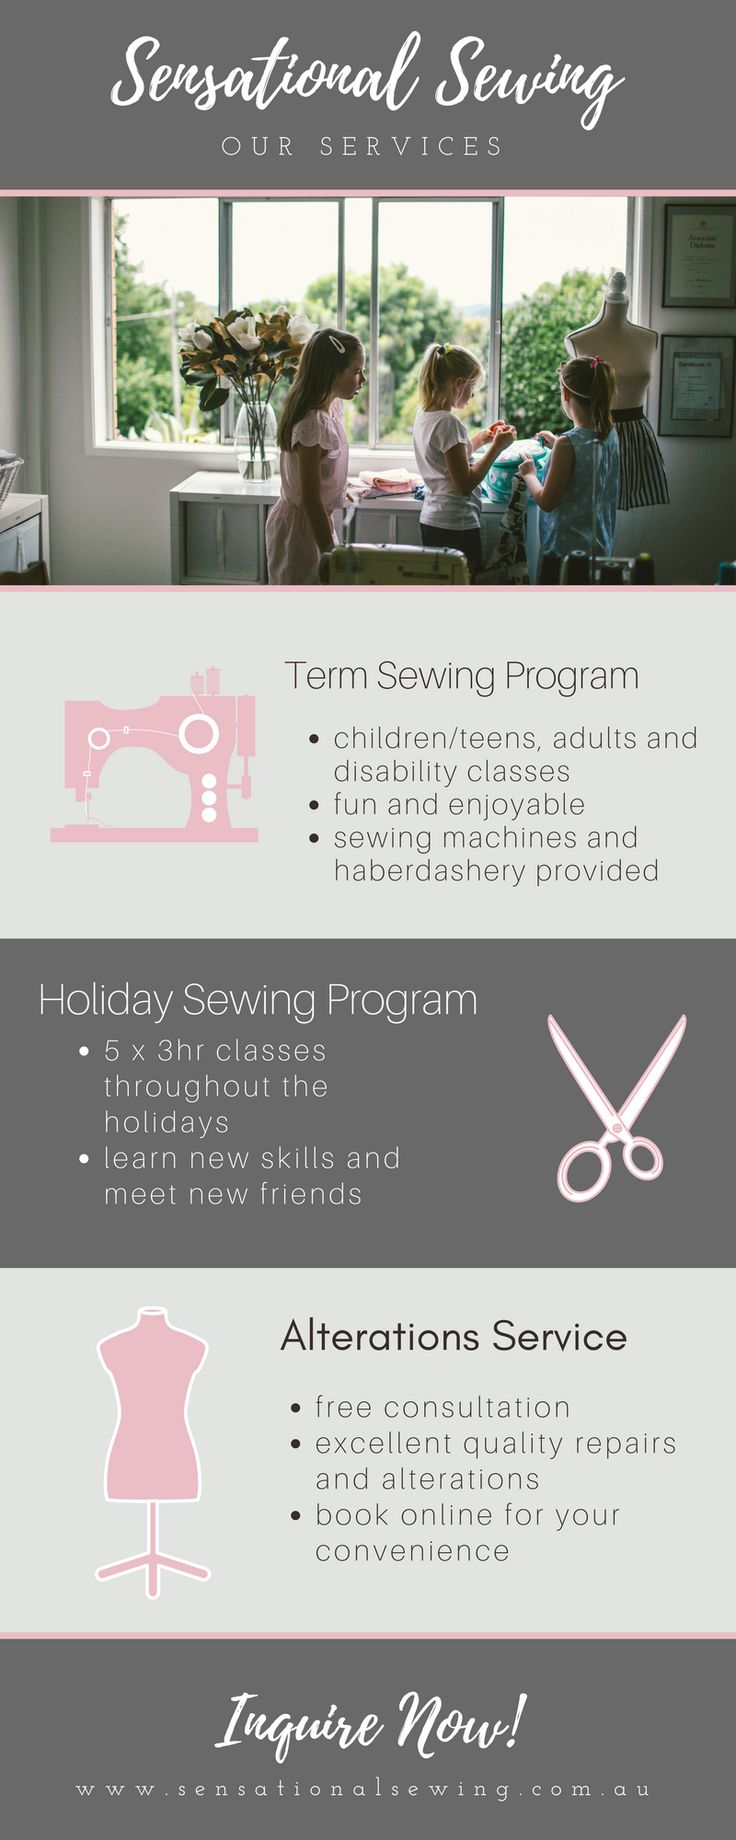 Services offered at Sensational Sewing  #learntosew #sewing #lessons #holiday #school #alterations #sensationalsewing